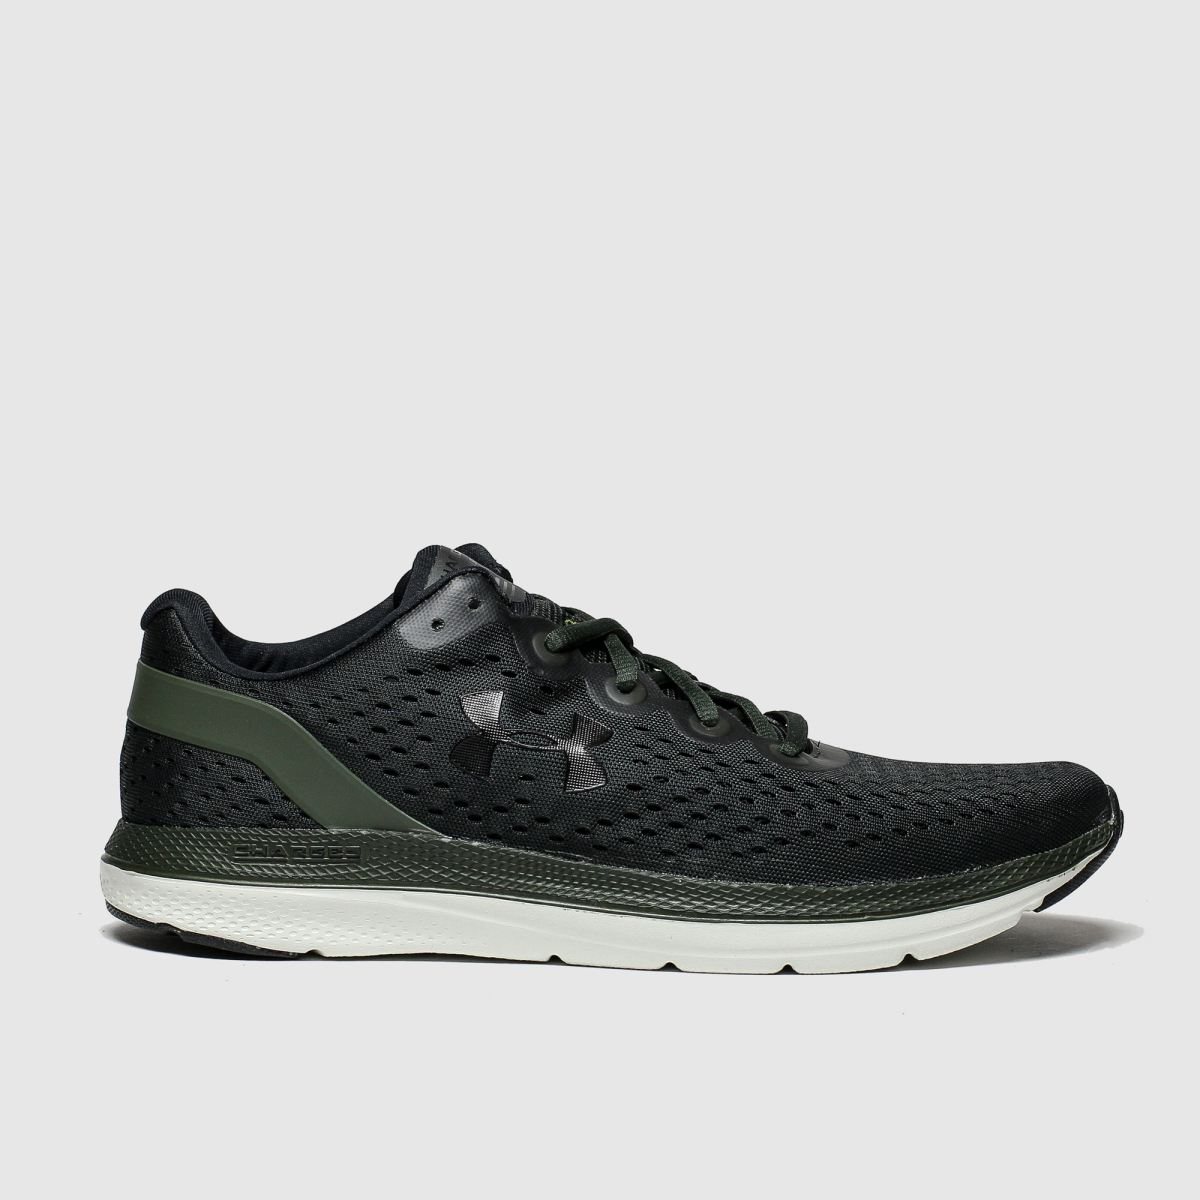 Under Armour Khaki Charged Impulse Trainers